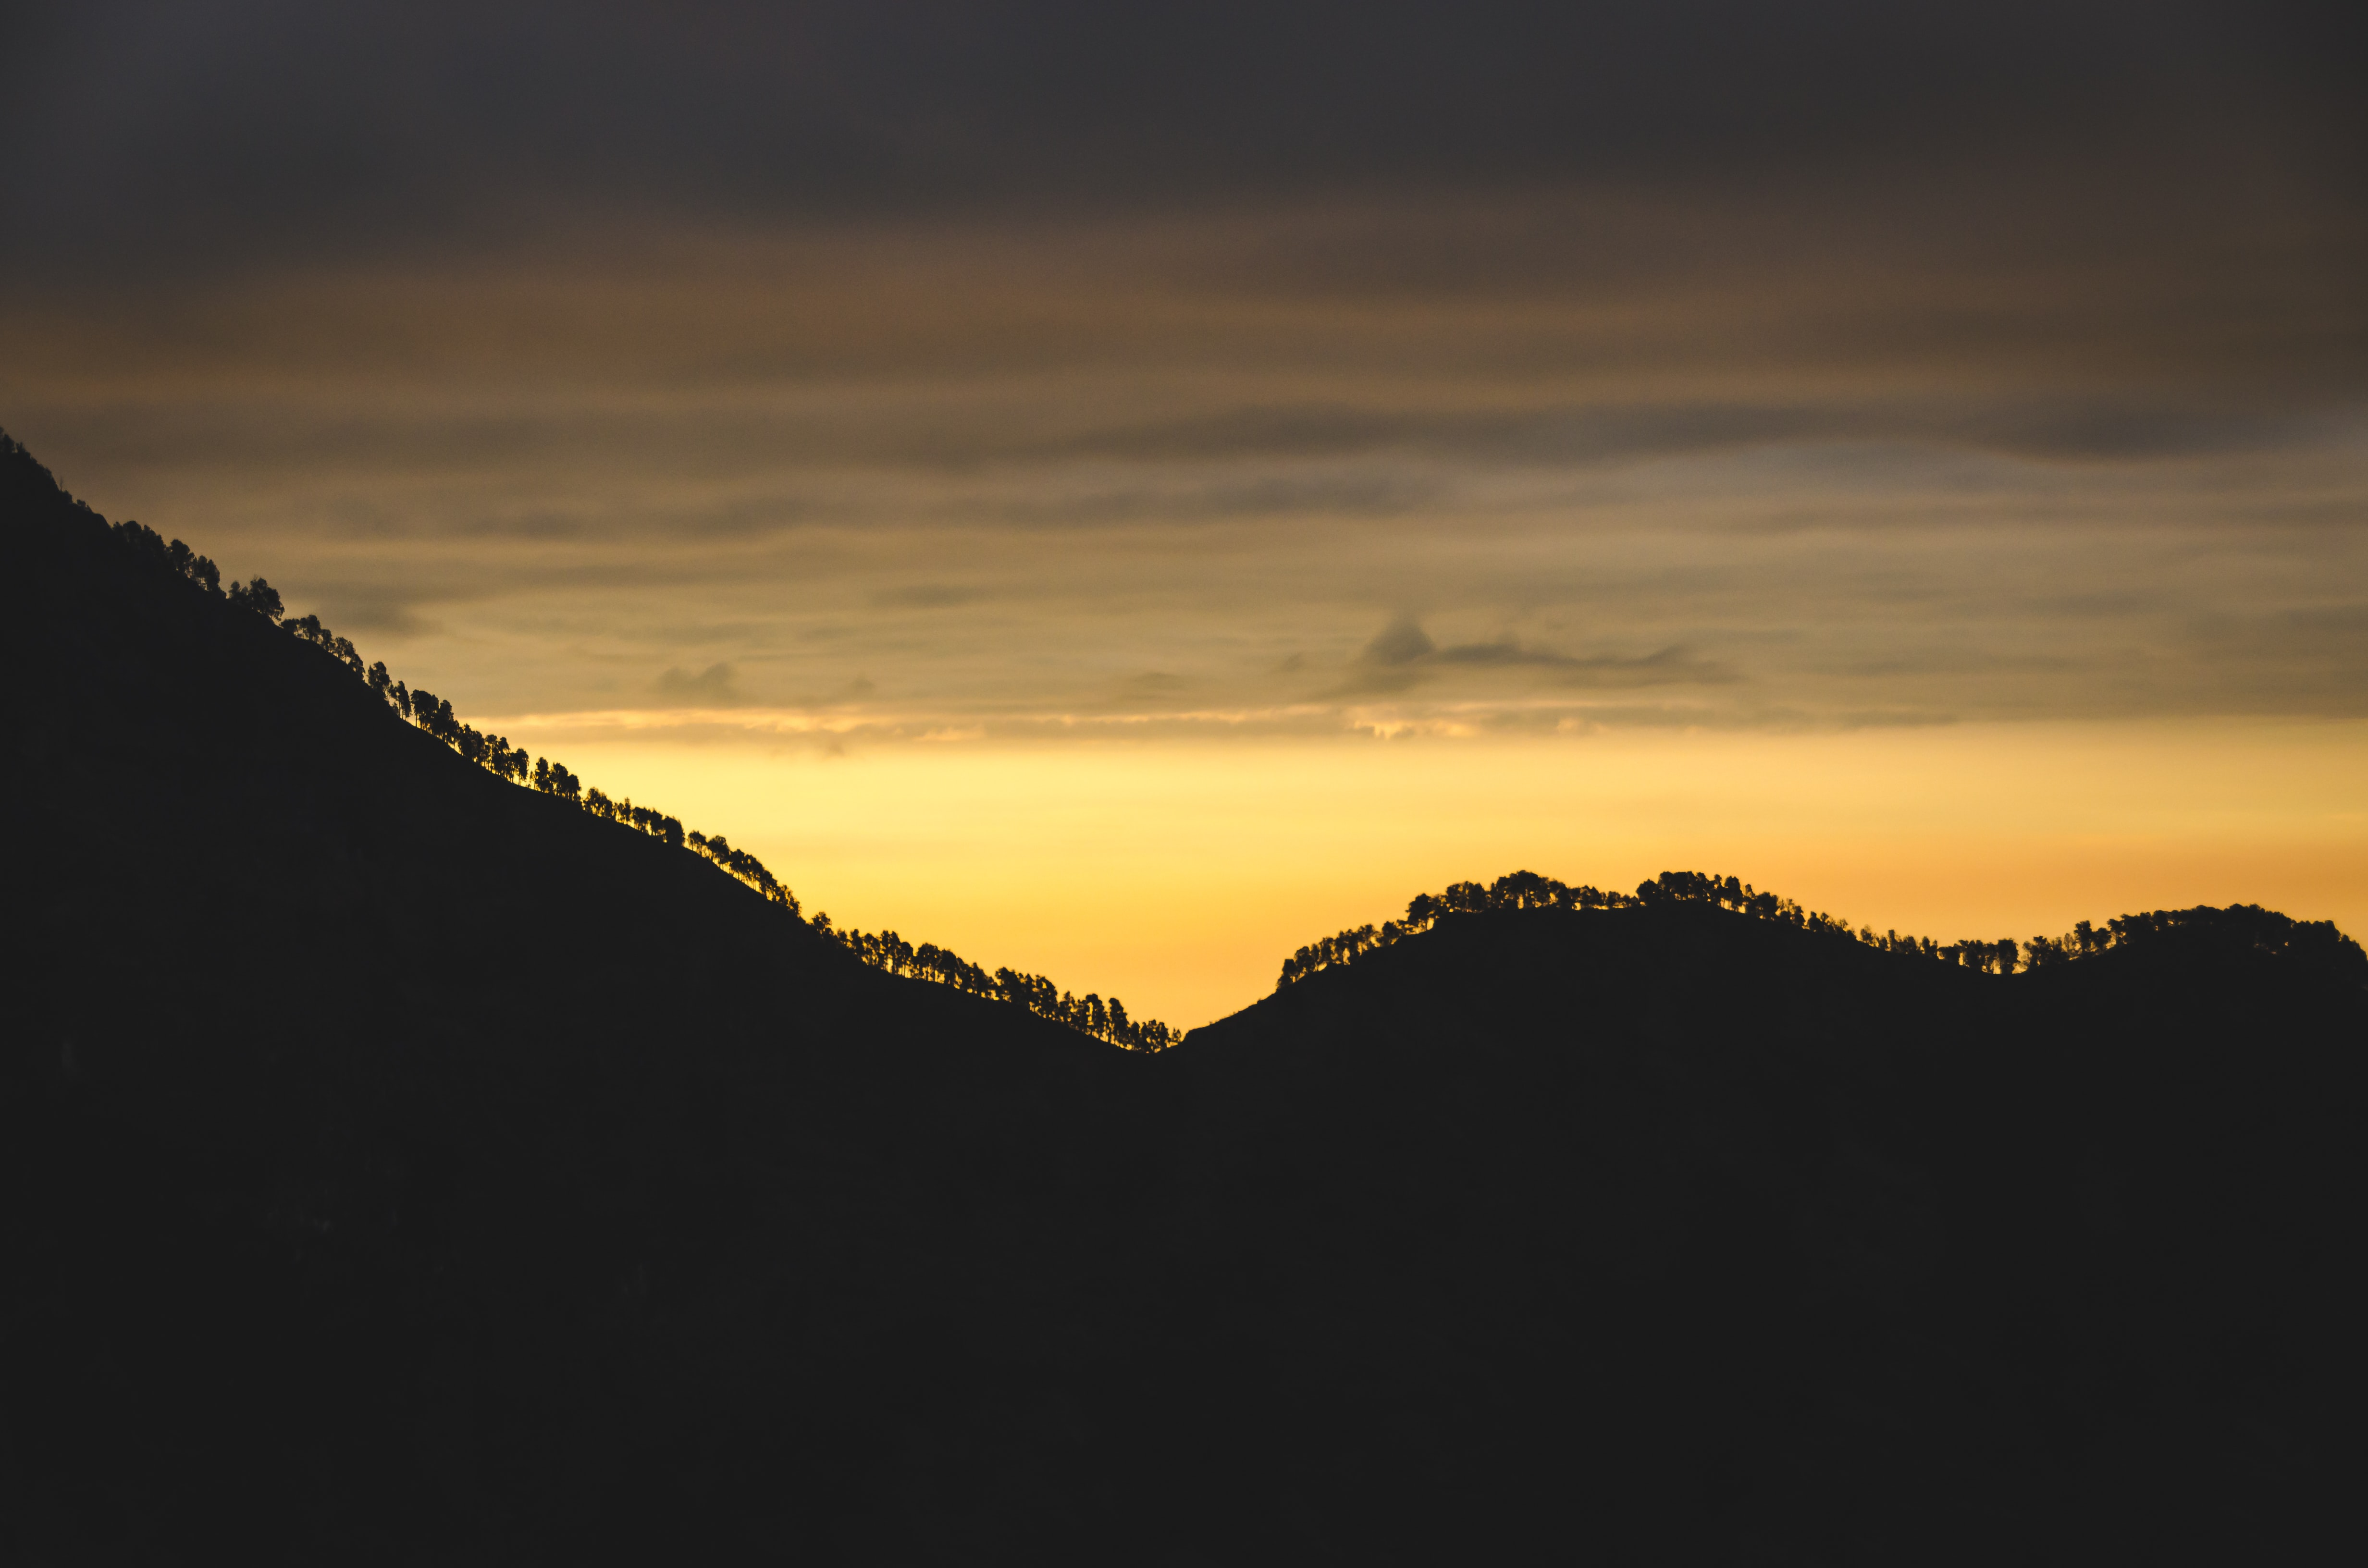 Silhouette tree-topped ridge from Mount Rinjani with a yellow sky that becomes cloudy and gray